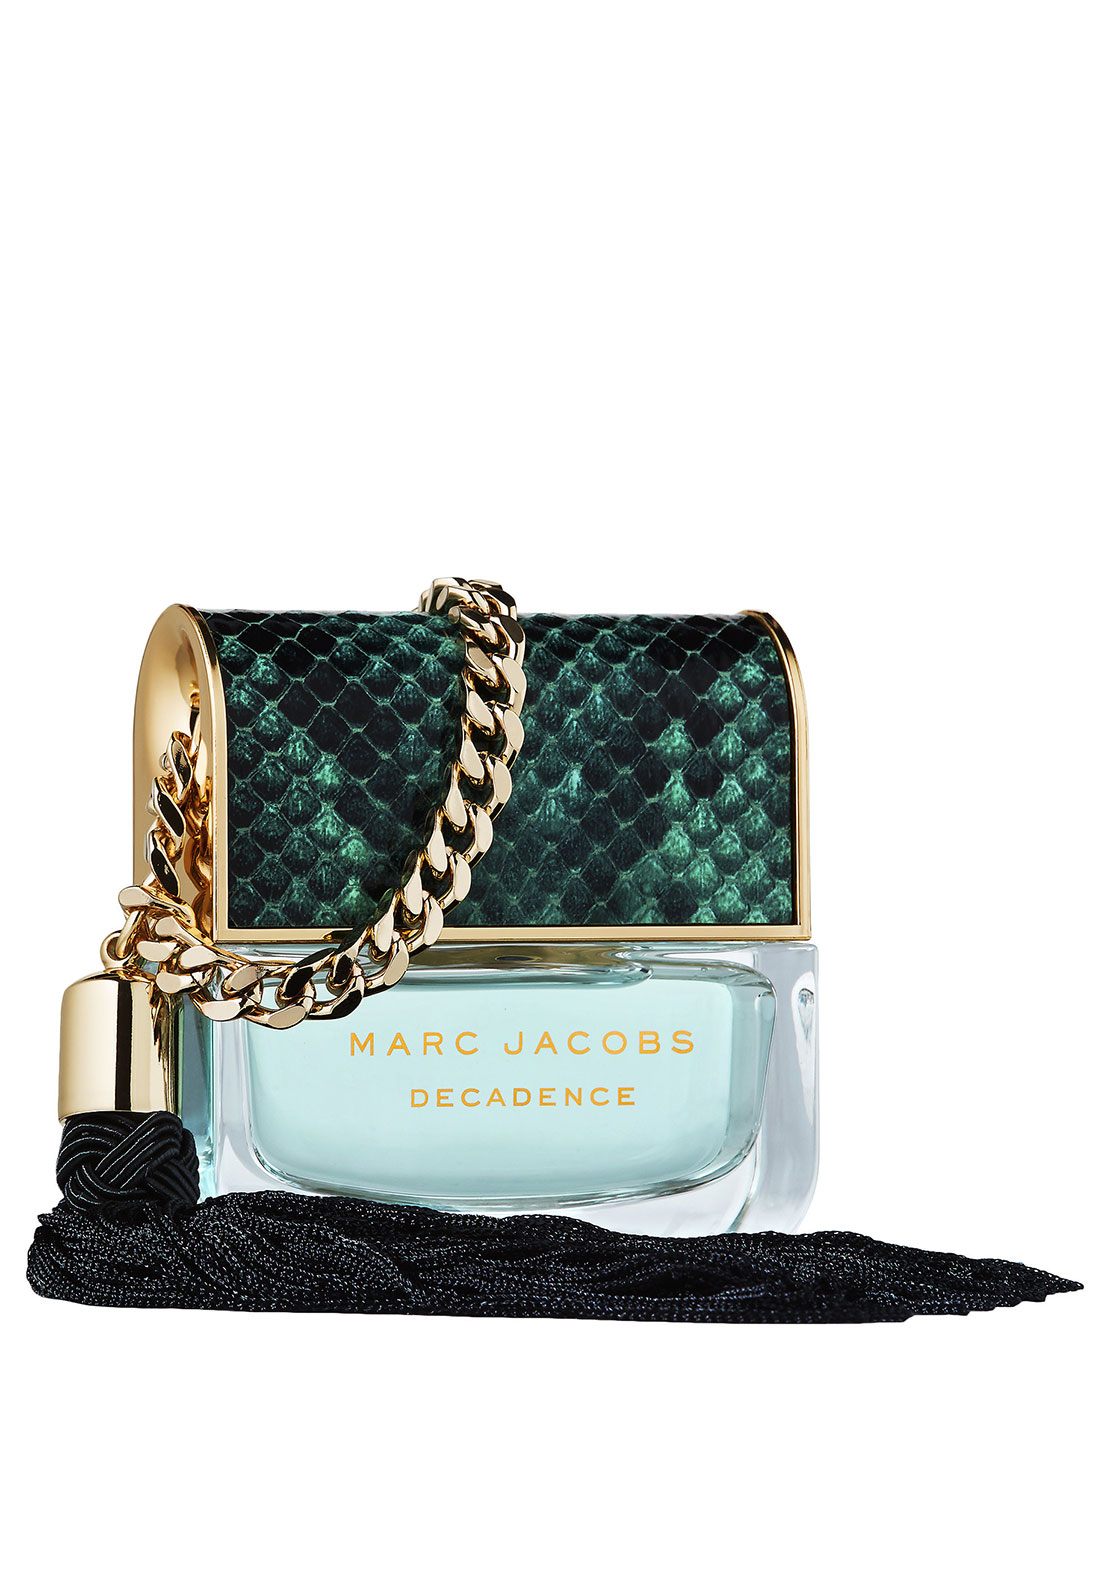 Marc Jacobs Divine Decadence Eau de Parfum, 30ml